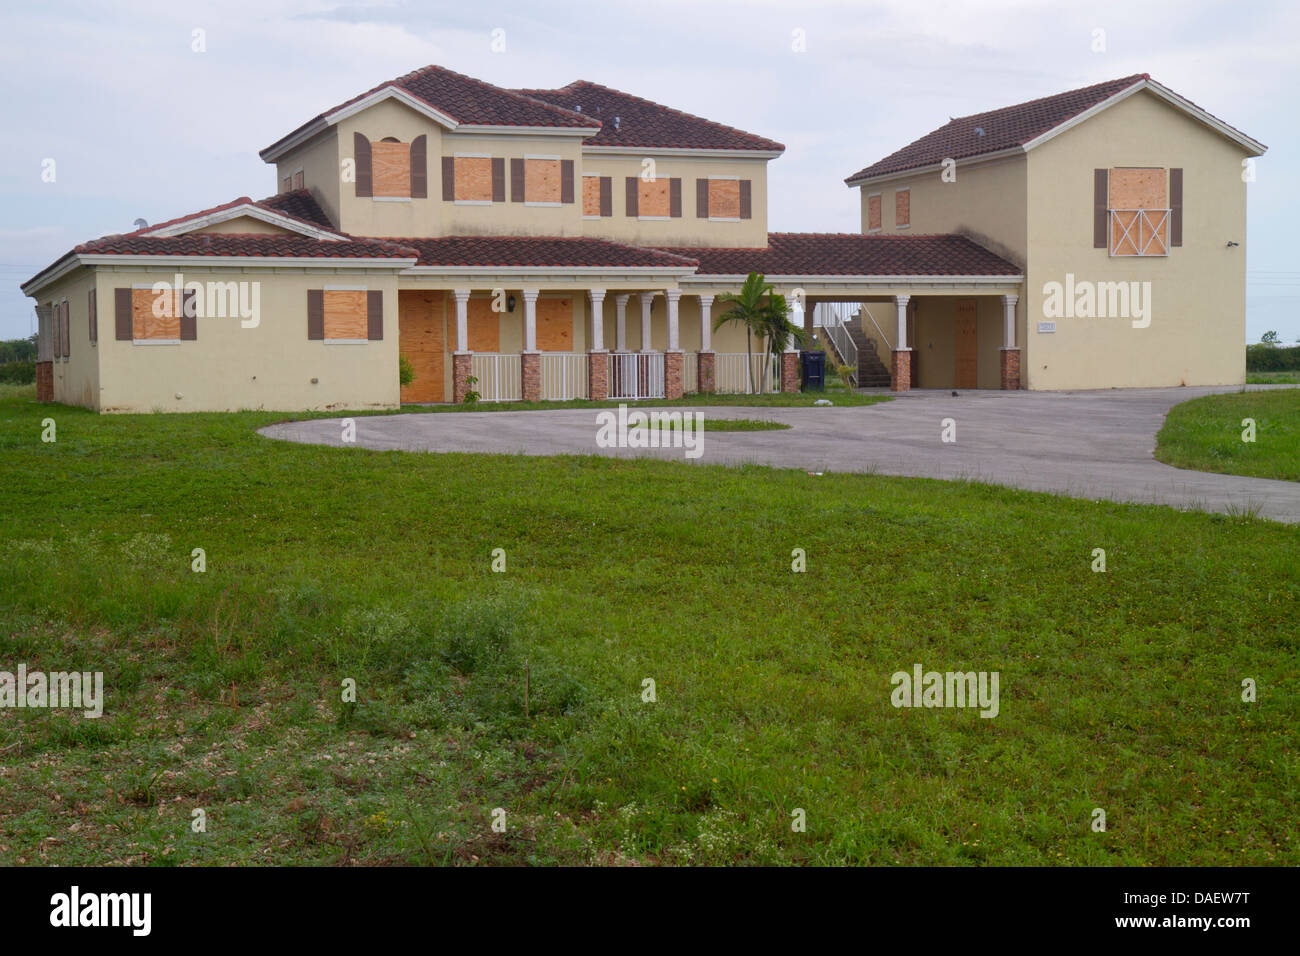 Miami homestead florida redland mansion boarded up vacant for Foreclosed mansions in florida